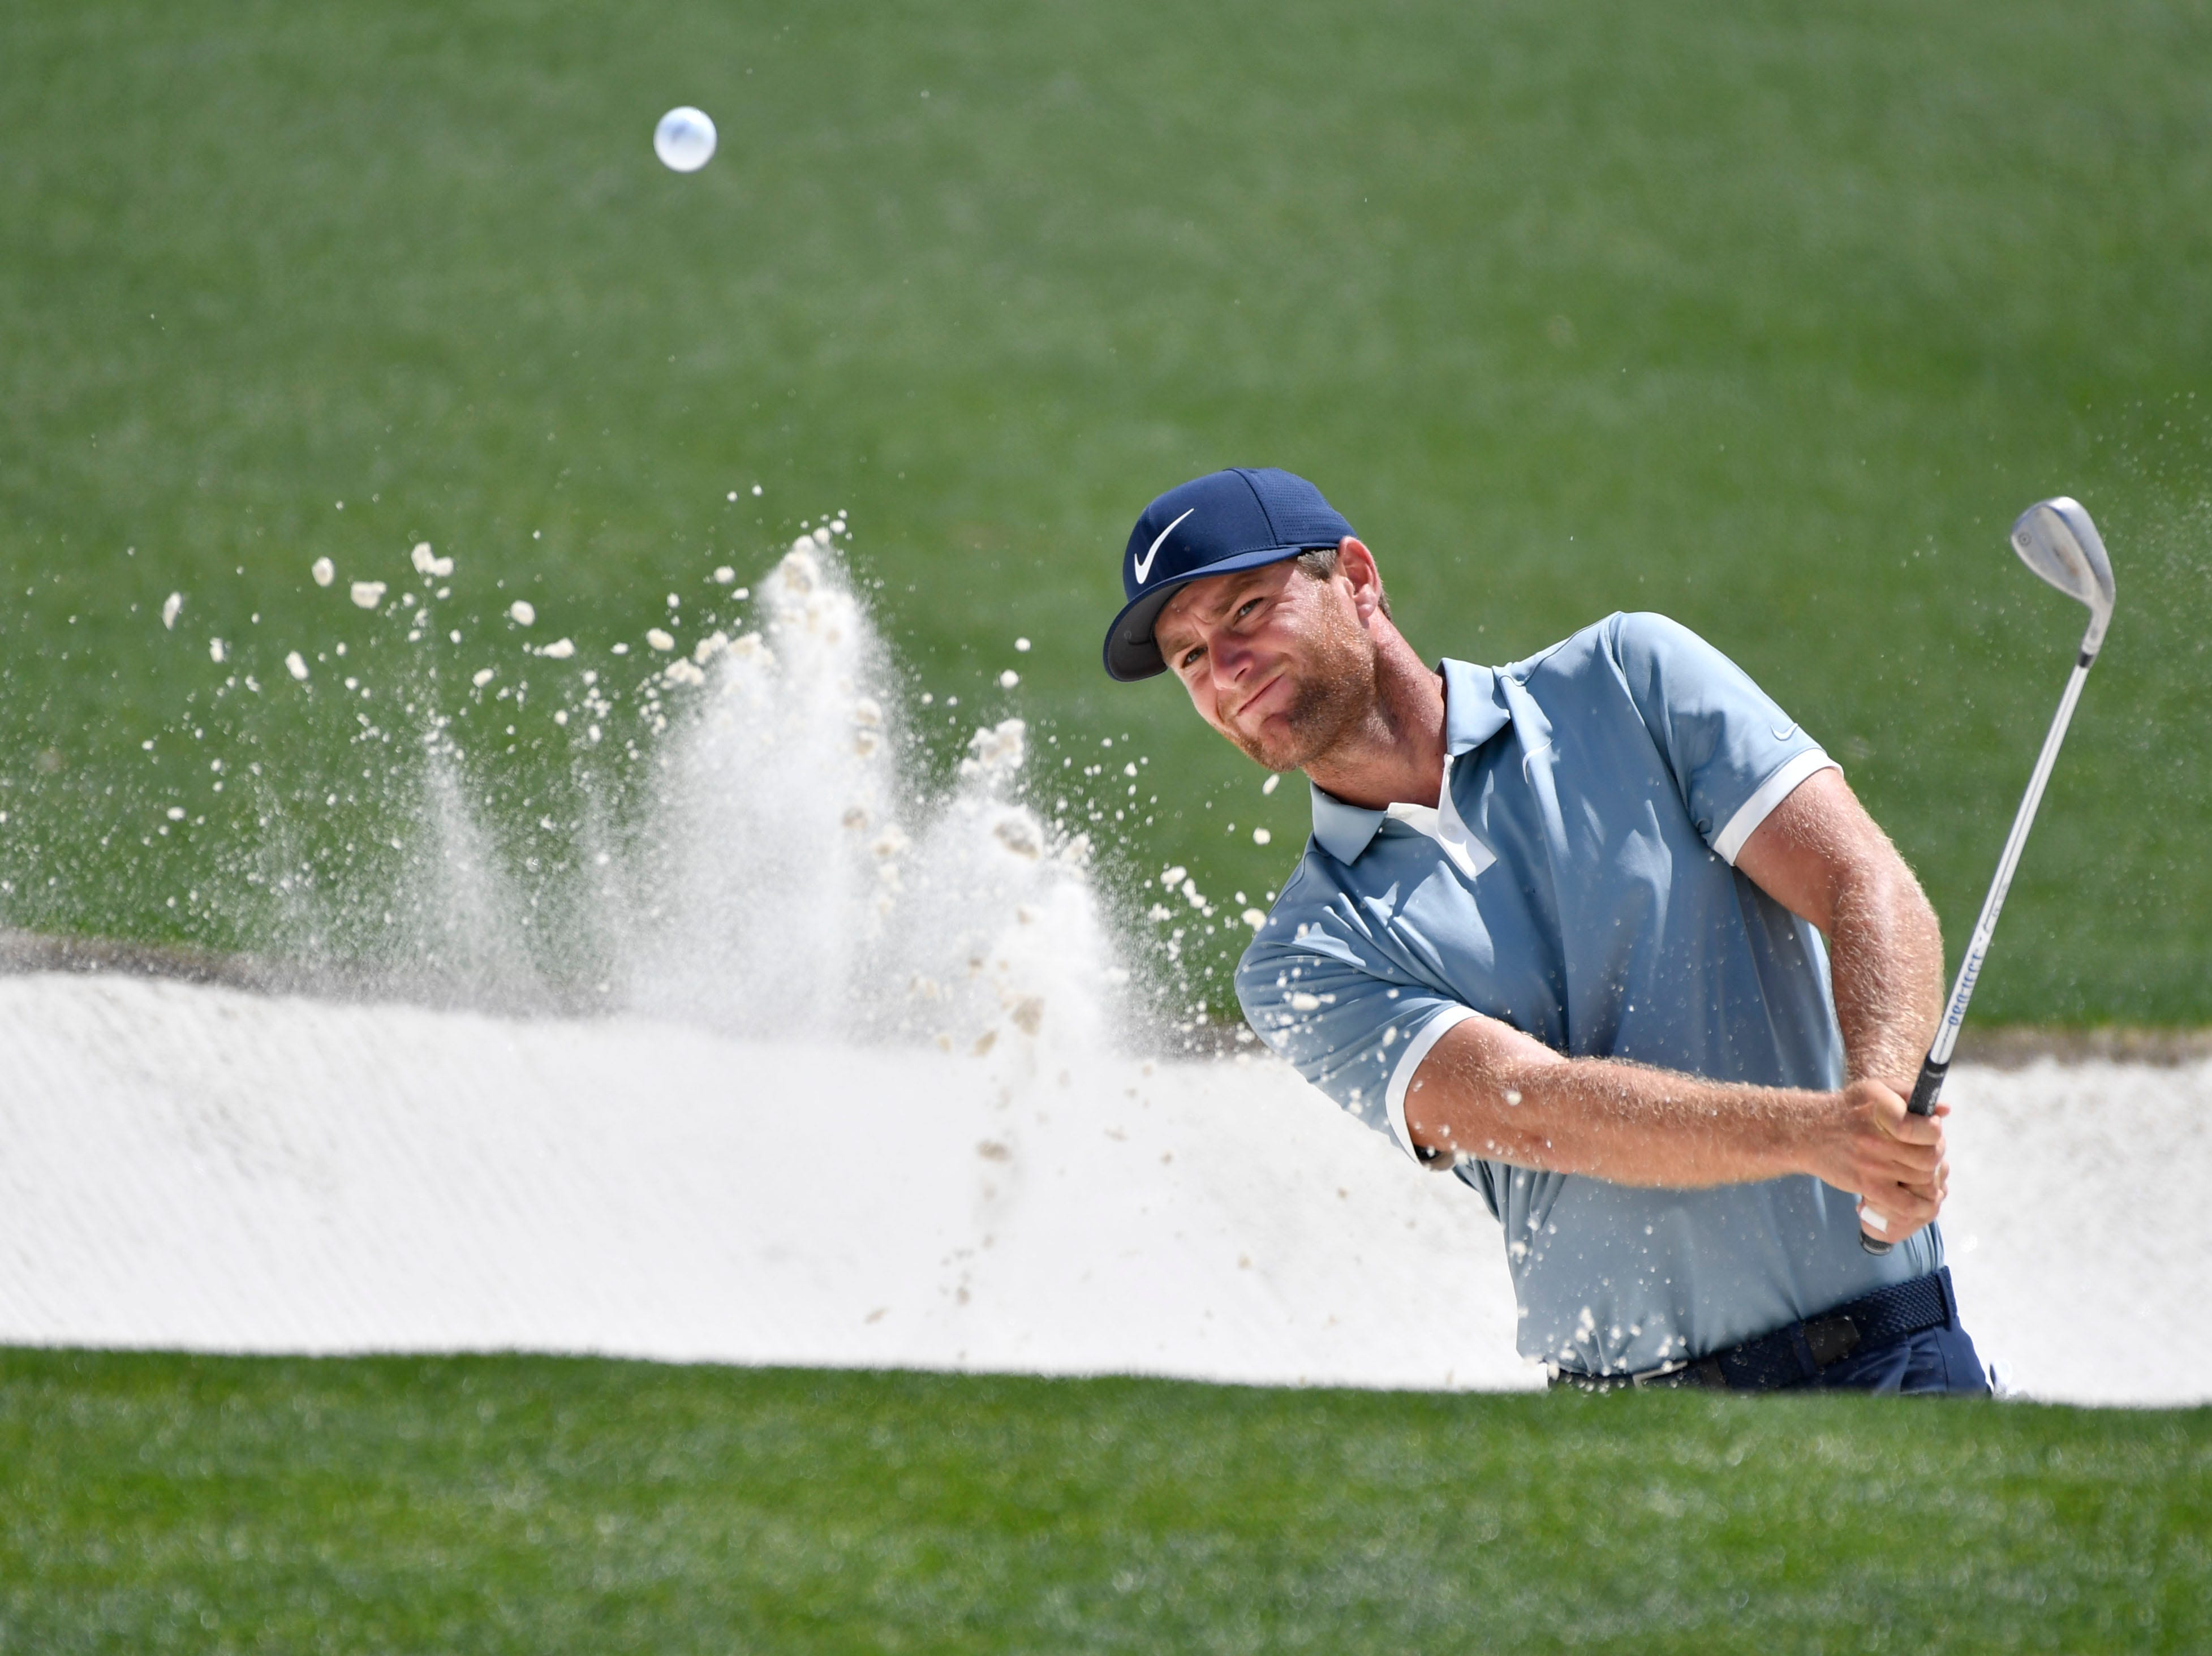 Lucas Bjerregaard hits out of a bunker on the 18th hole during the first round of the Masters.